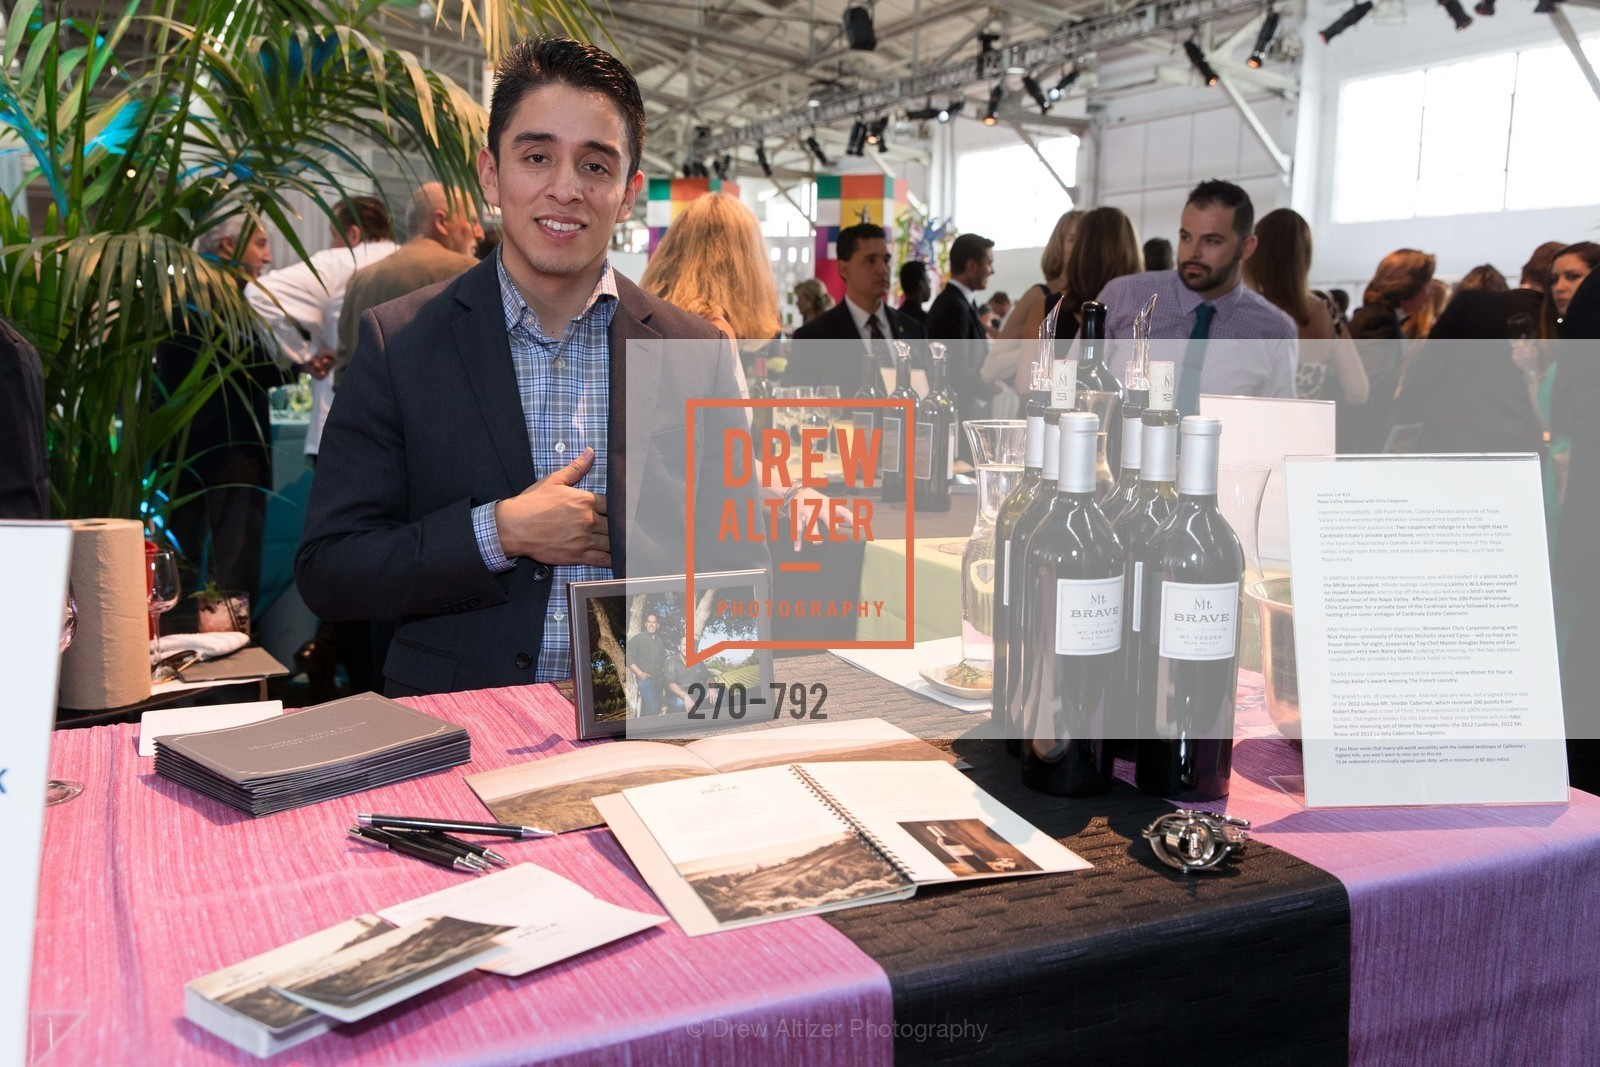 Mt. Brave Wines, MEALS ON WHEELS OF SAN FRANCISCO'S 28th Annual Star Chefs and Vintners Gala, US, April 19th, 2015,Drew Altizer, Drew Altizer Photography, full-service agency, private events, San Francisco photographer, photographer california